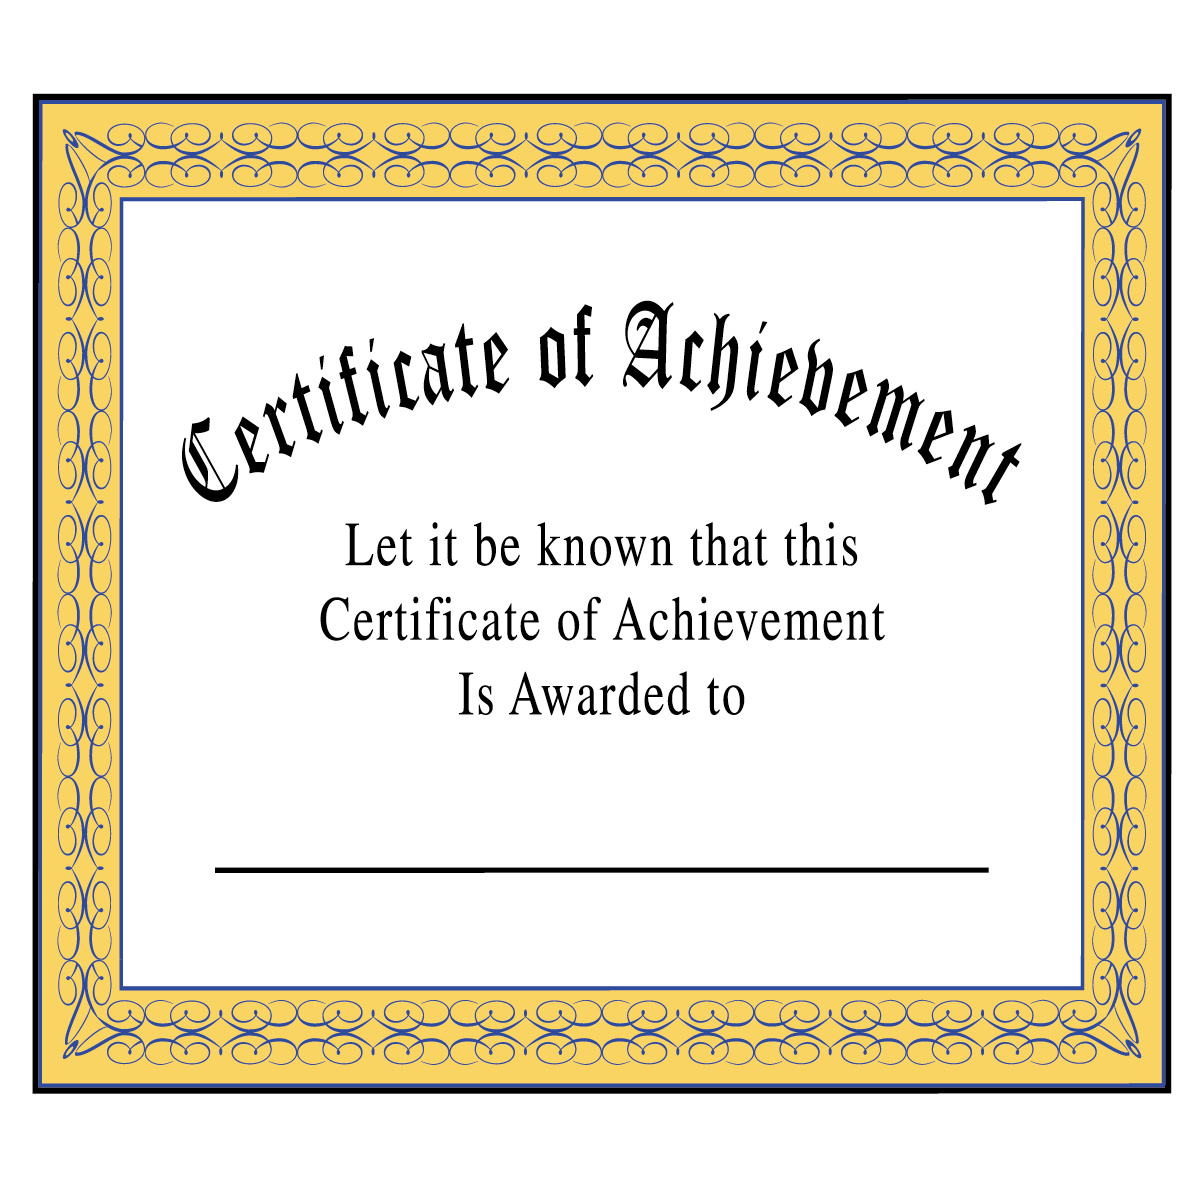 Certificate Of Achievement Clipart Clipart Kid – Certificate of Achievement for Kids